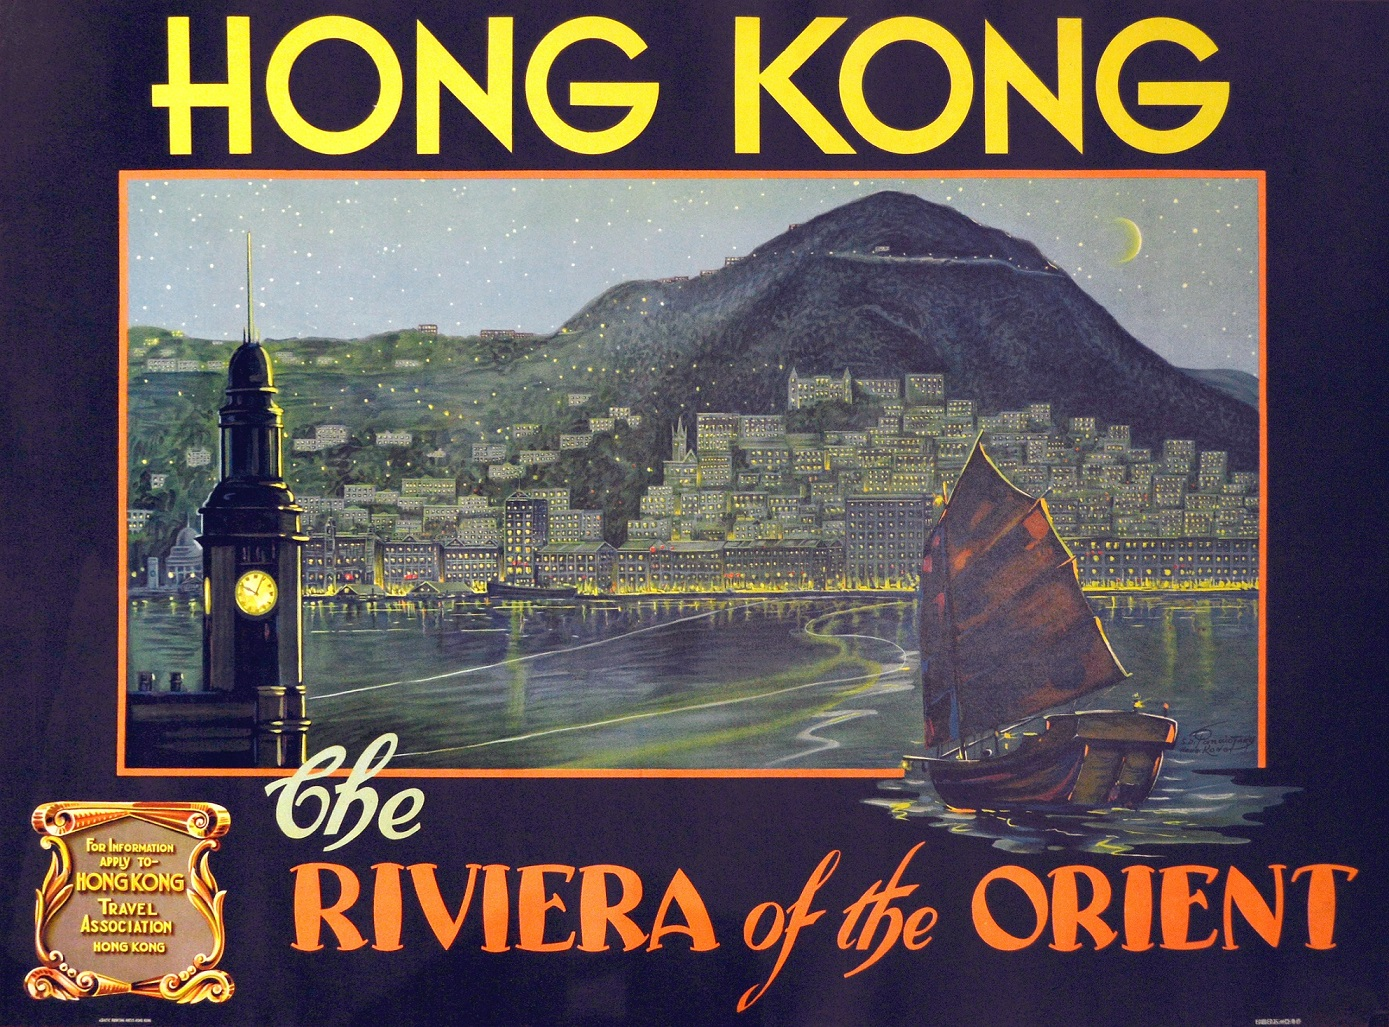 S. D. Panaiotaky, Hong Kong - Riviera of the Orient, c. 1930